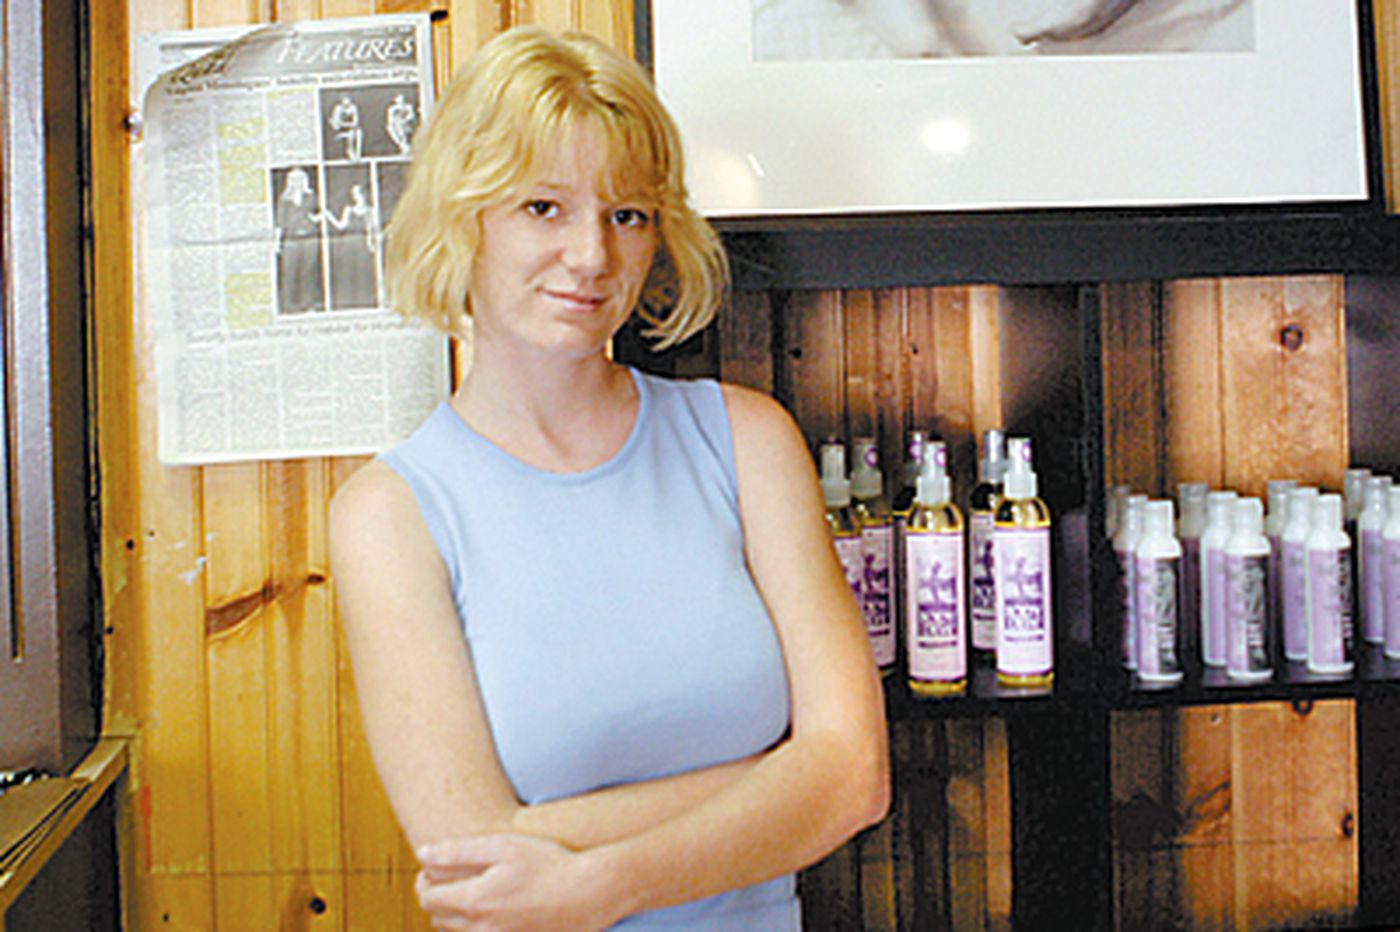 New adult shop finds itself in a touchy spot